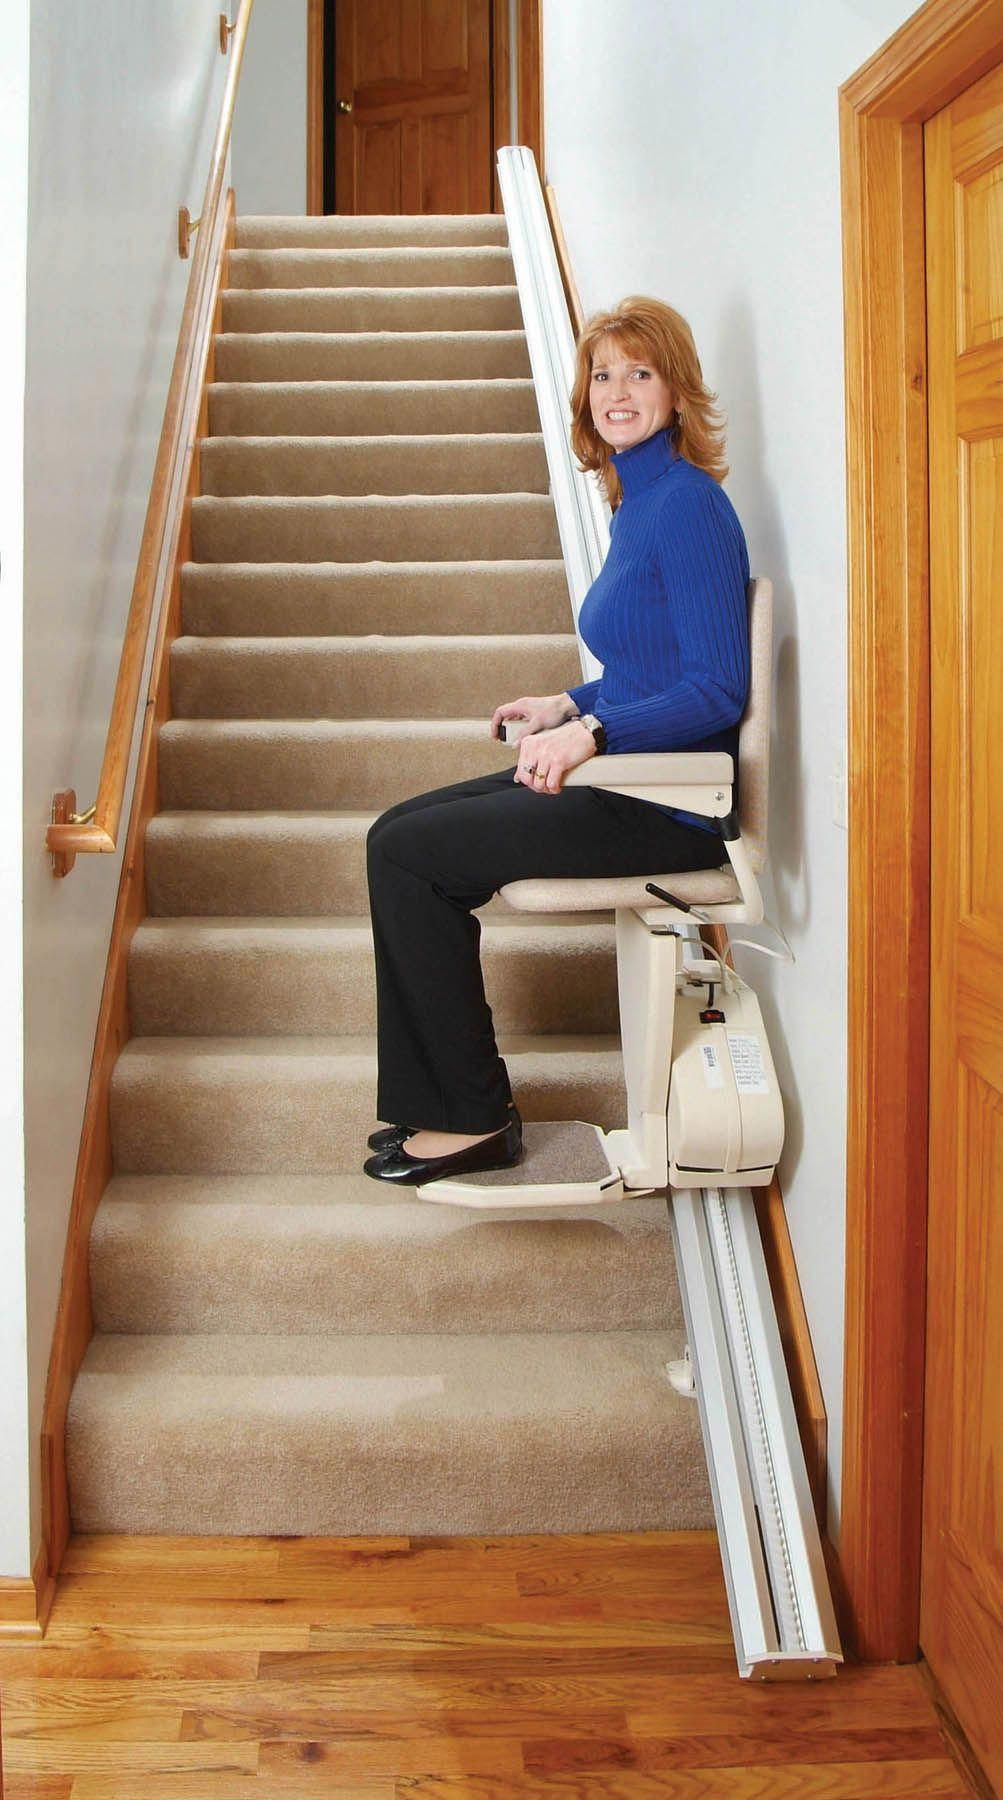 Stair Lift Home Elevators Handicap Lifts Stair Seat Handicapchair Stair Lifts Stair Lift Chair Lift